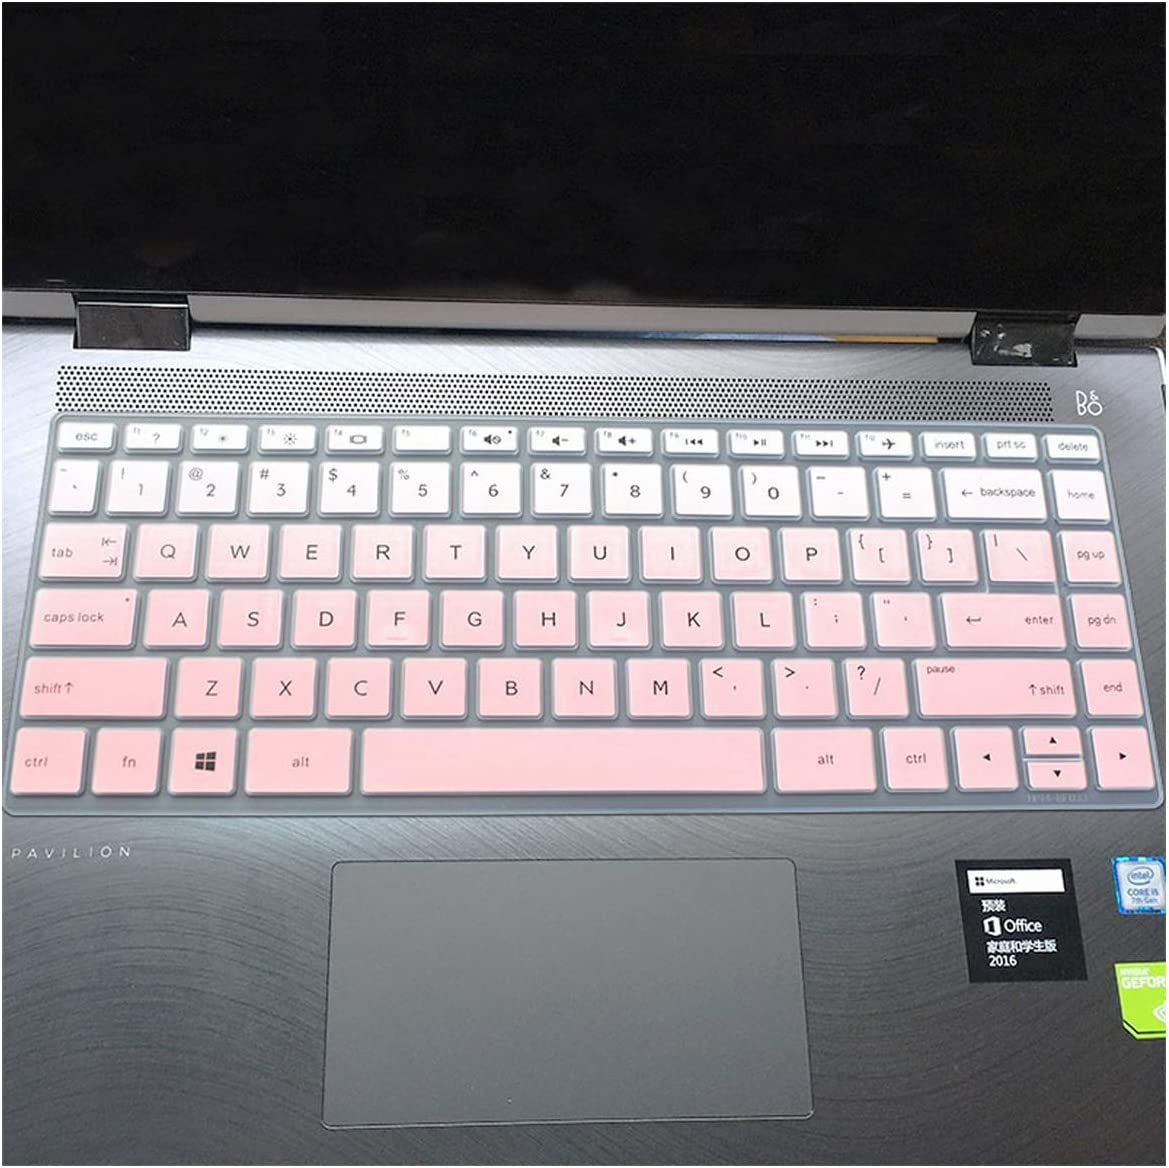 13.3 Inch Laptop Keyboard Cover Protector for Hp Envy X360 13 Ag0002La 13 Ag0001La 13 Ag0000Au 13 Ag0000Au 13 Ag Notebook Skin-in Keyboard Covers from Computer /& Office,Fadepink